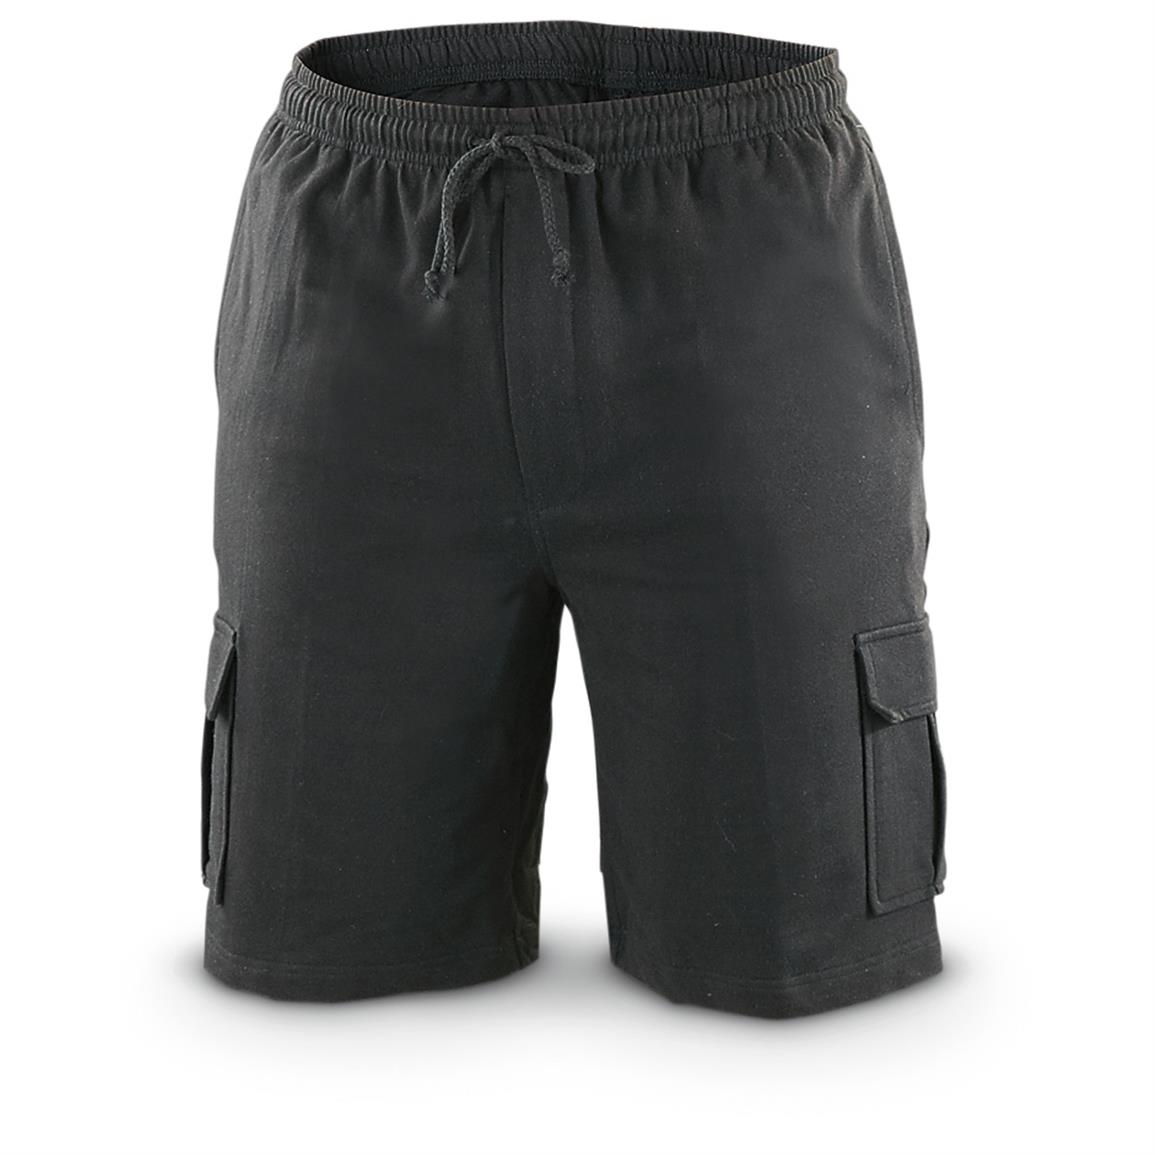 Guide Gear Men's Knit Cargo Shorts, Black